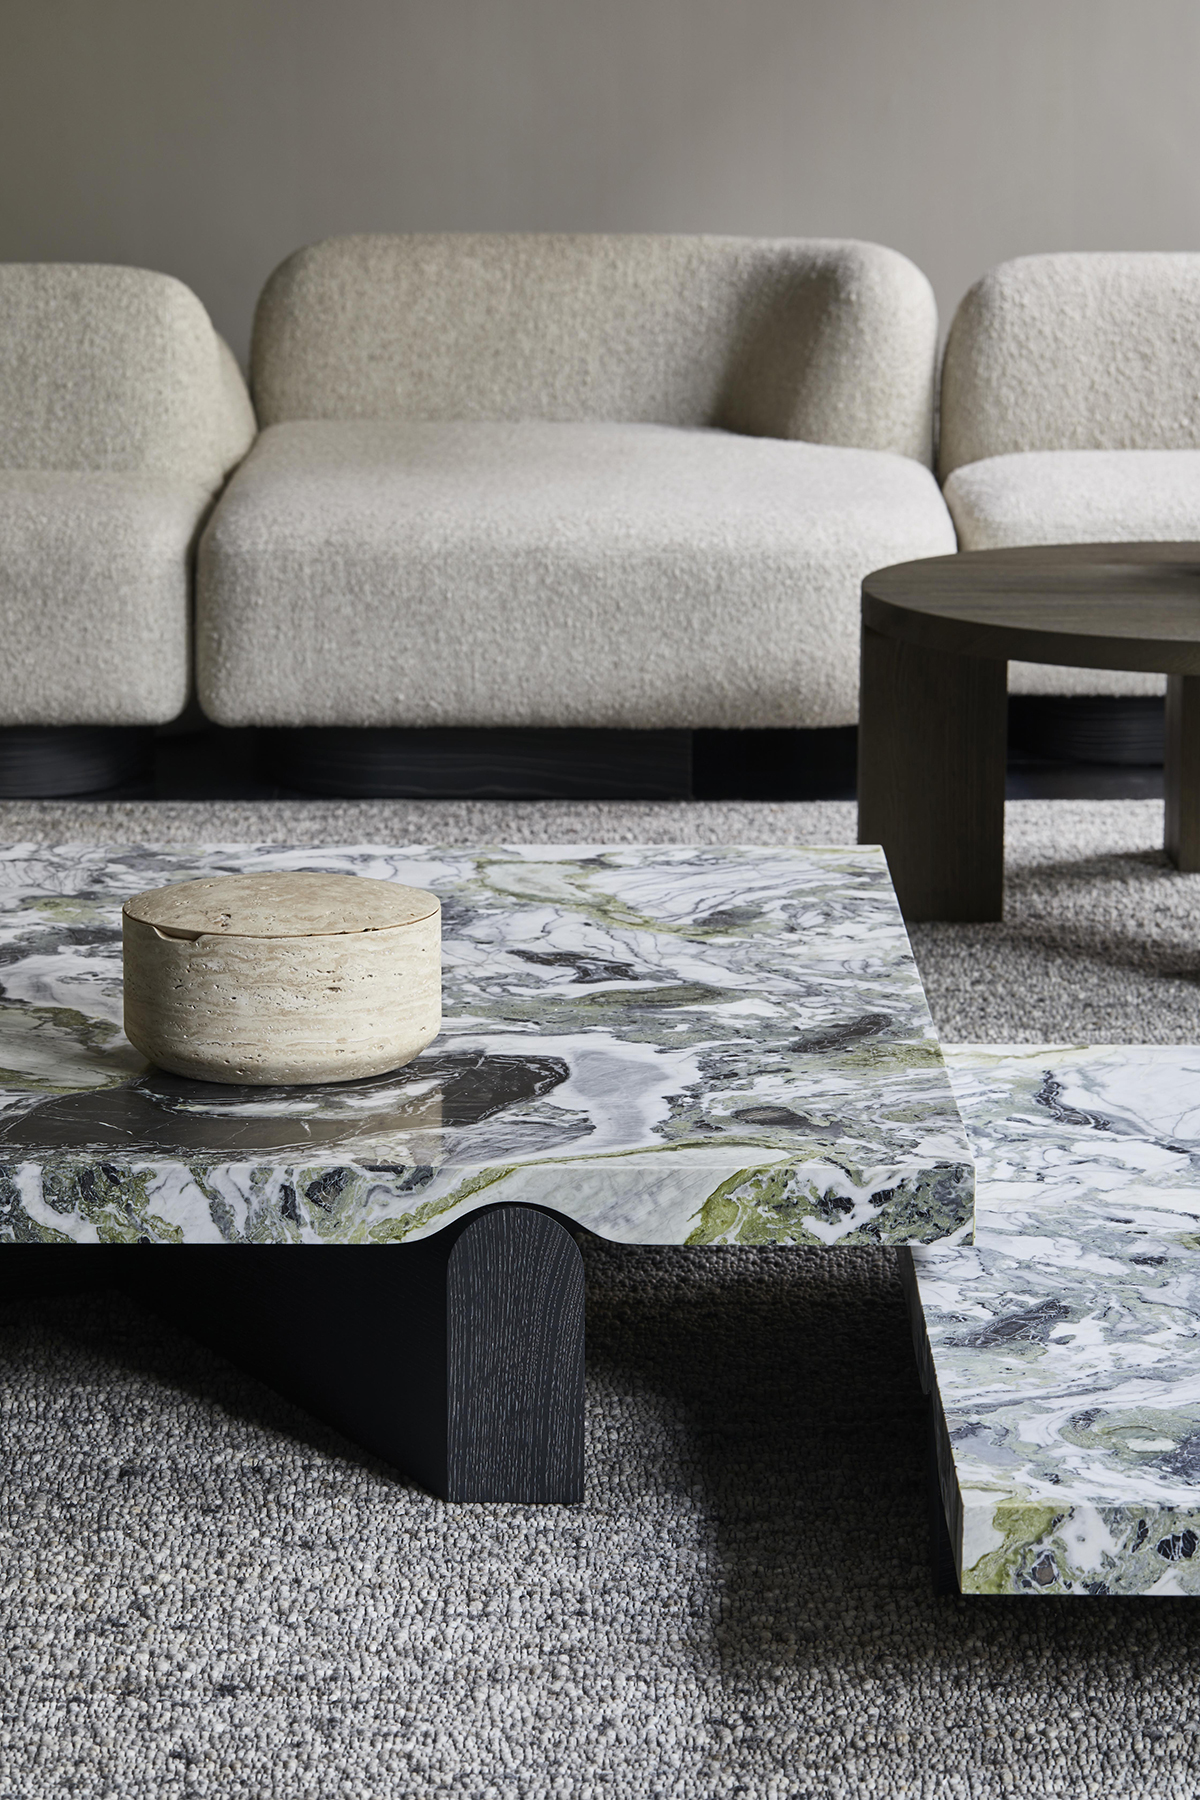 Delcourt-Collection - POP sofa - GEO low table - EDO low table